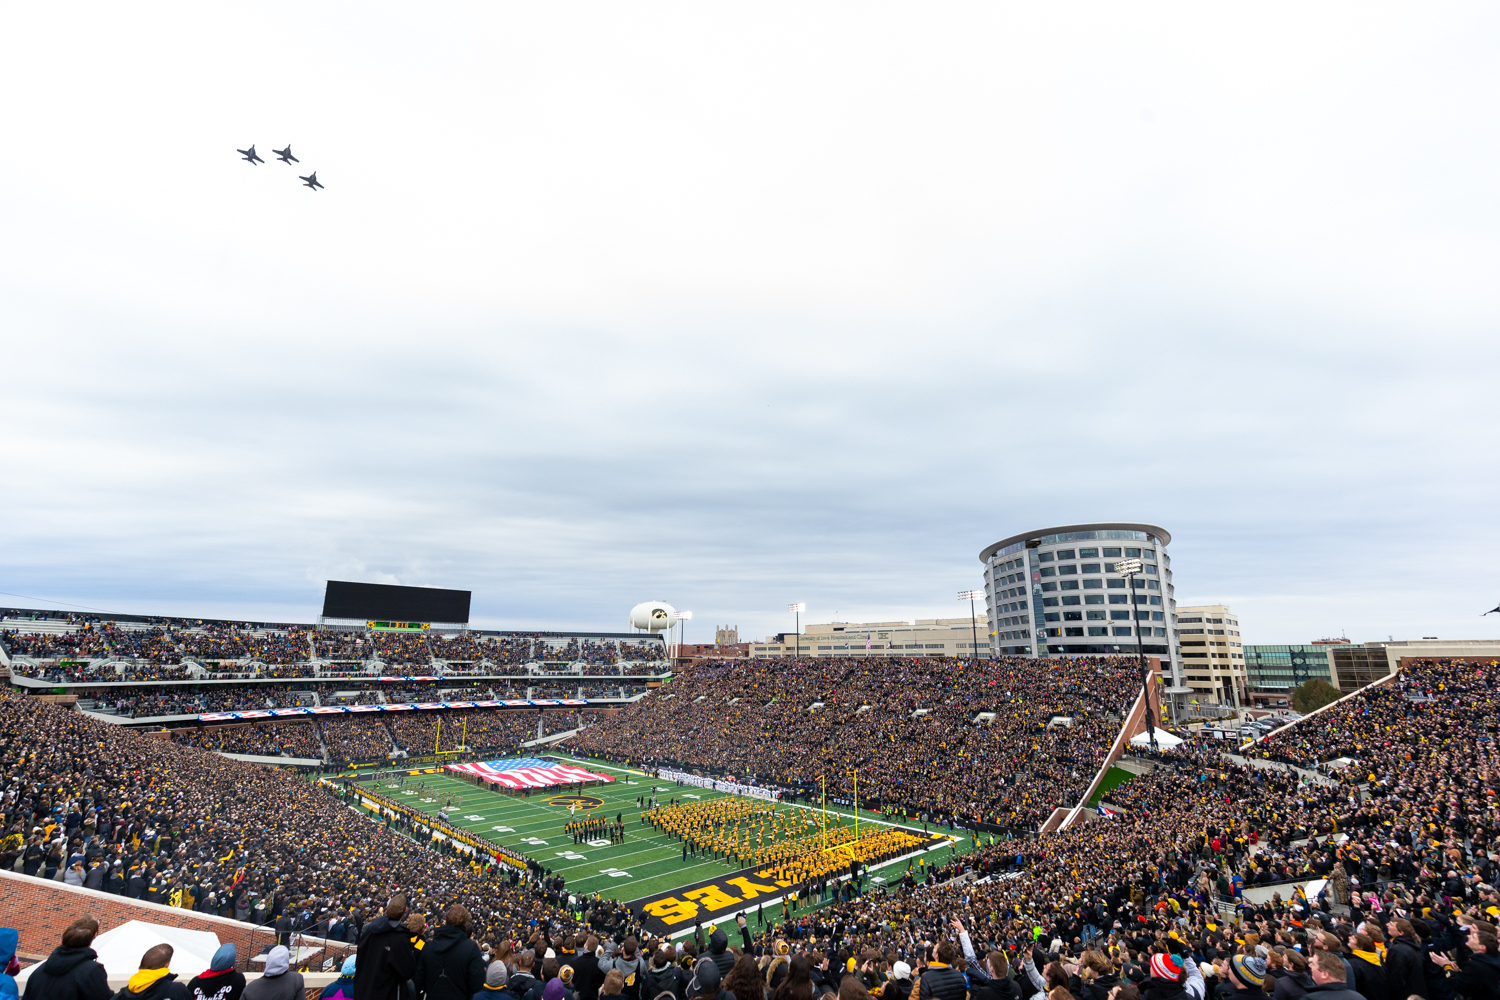 Three+Boeing+F%2FA-18F+Super+Hornets+from+the+US+Navy%27s+Fighter+Squadron+VF-103+fly+over+Kinnick+Stadium+before+a+game+against+Northwestern+University+on+Saturday%2C+Nov.+10%2C+2018.+The+Wildcats+defeated+the+Hawkeyes+14-10.+%28David+Harmantas%2FThe+Daily+Iowan%29